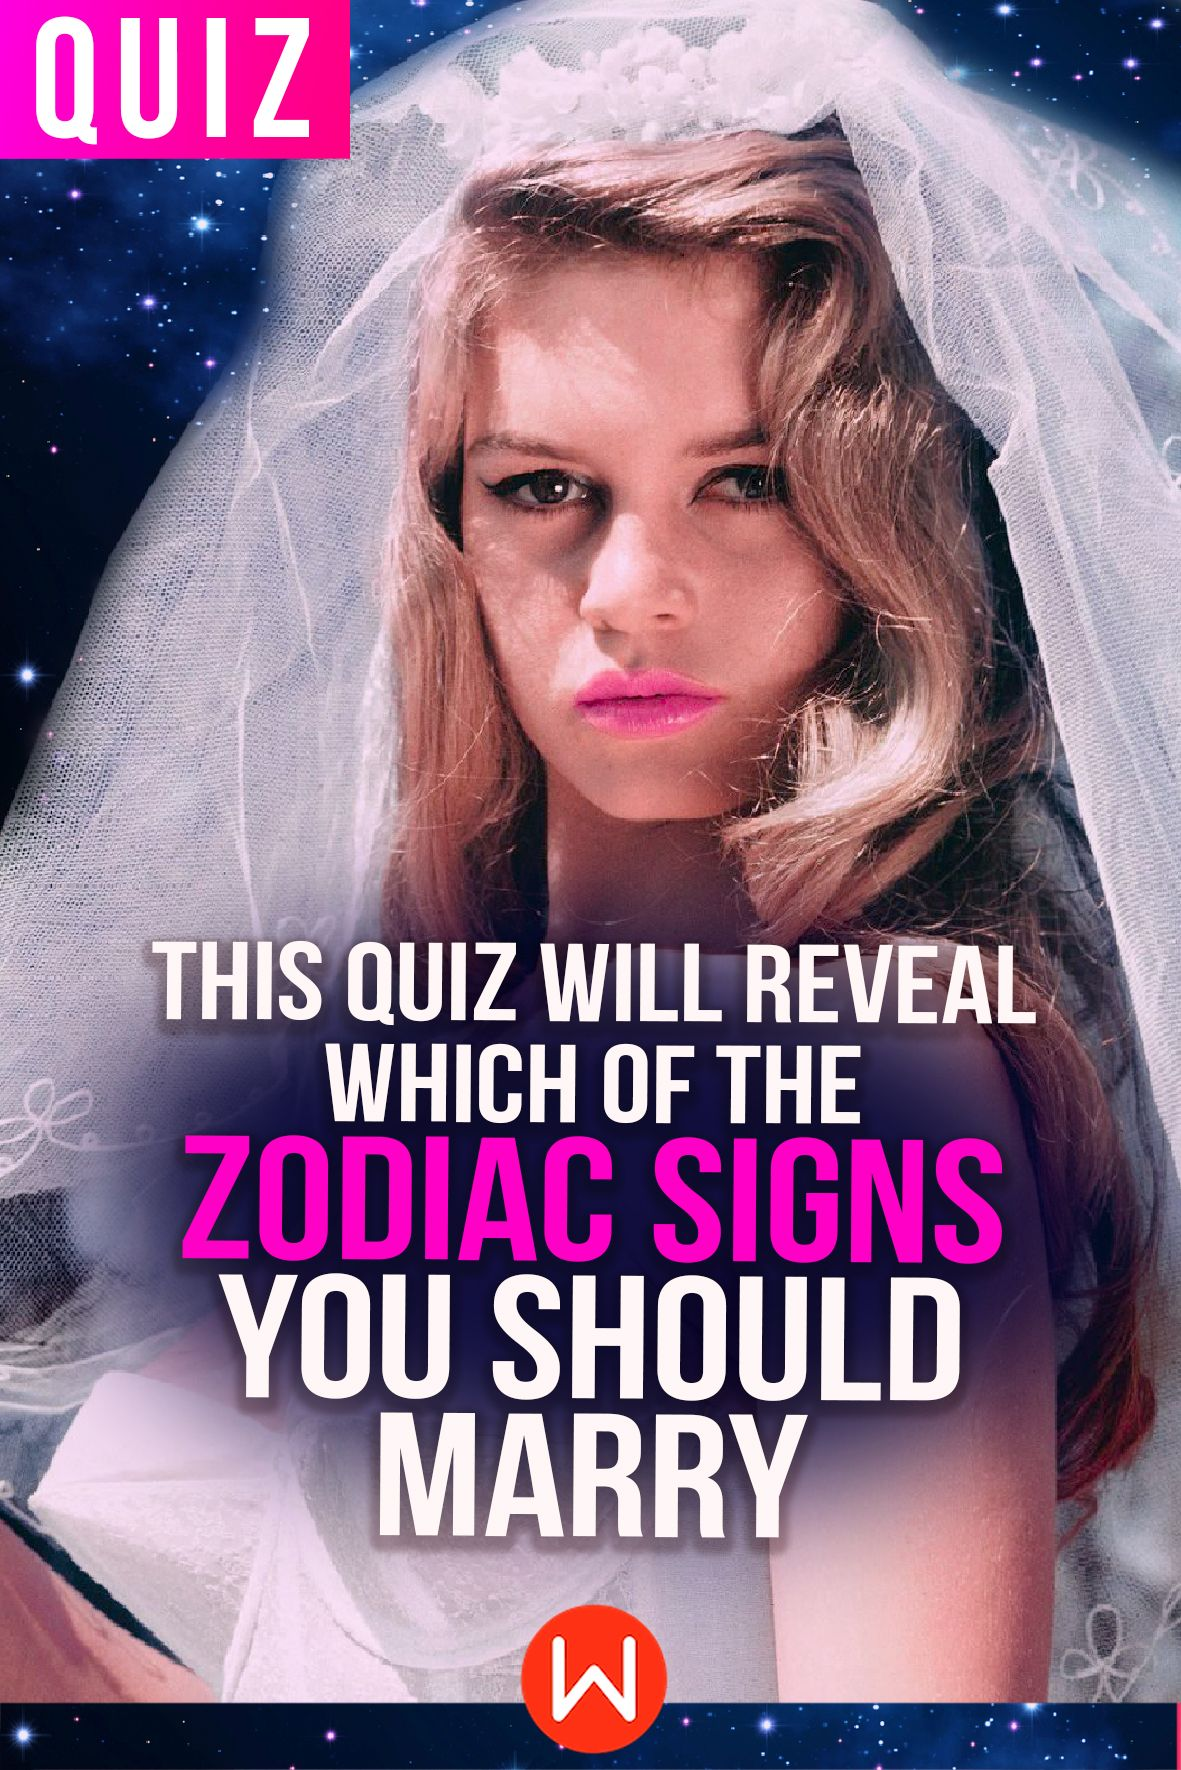 This Quiz Will Reveal Which of the Zodiac Signs You Should